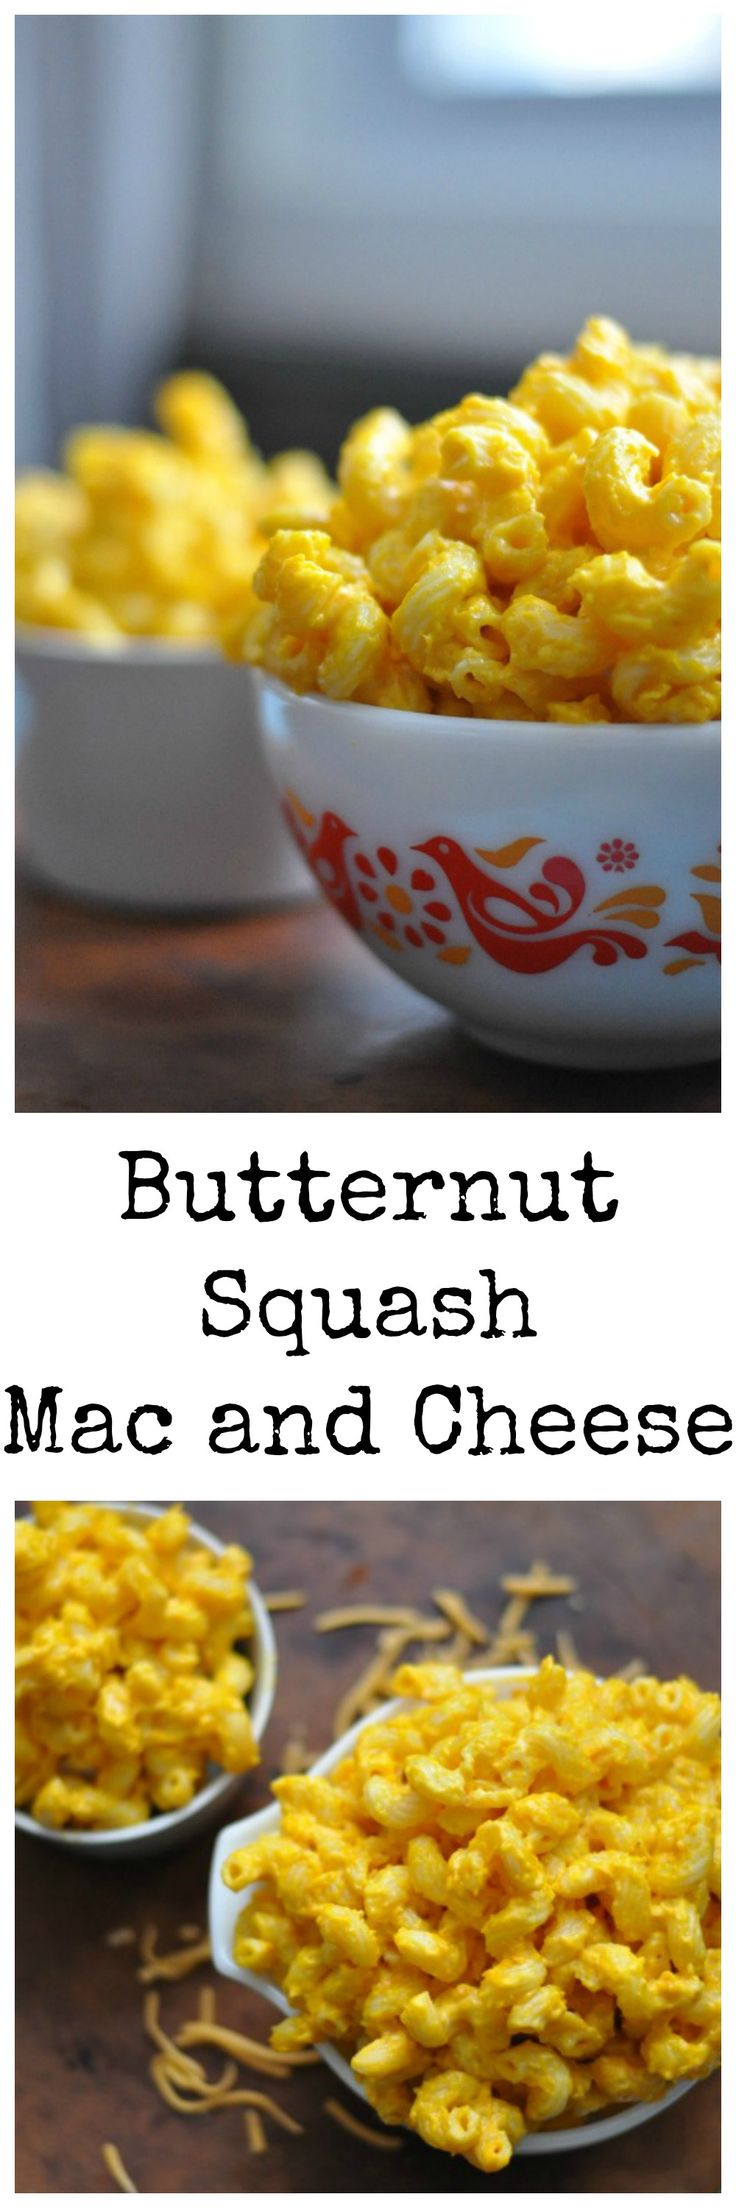 Simple Butternut Squash Mac and Cheese made on the stove or baked in the oven…